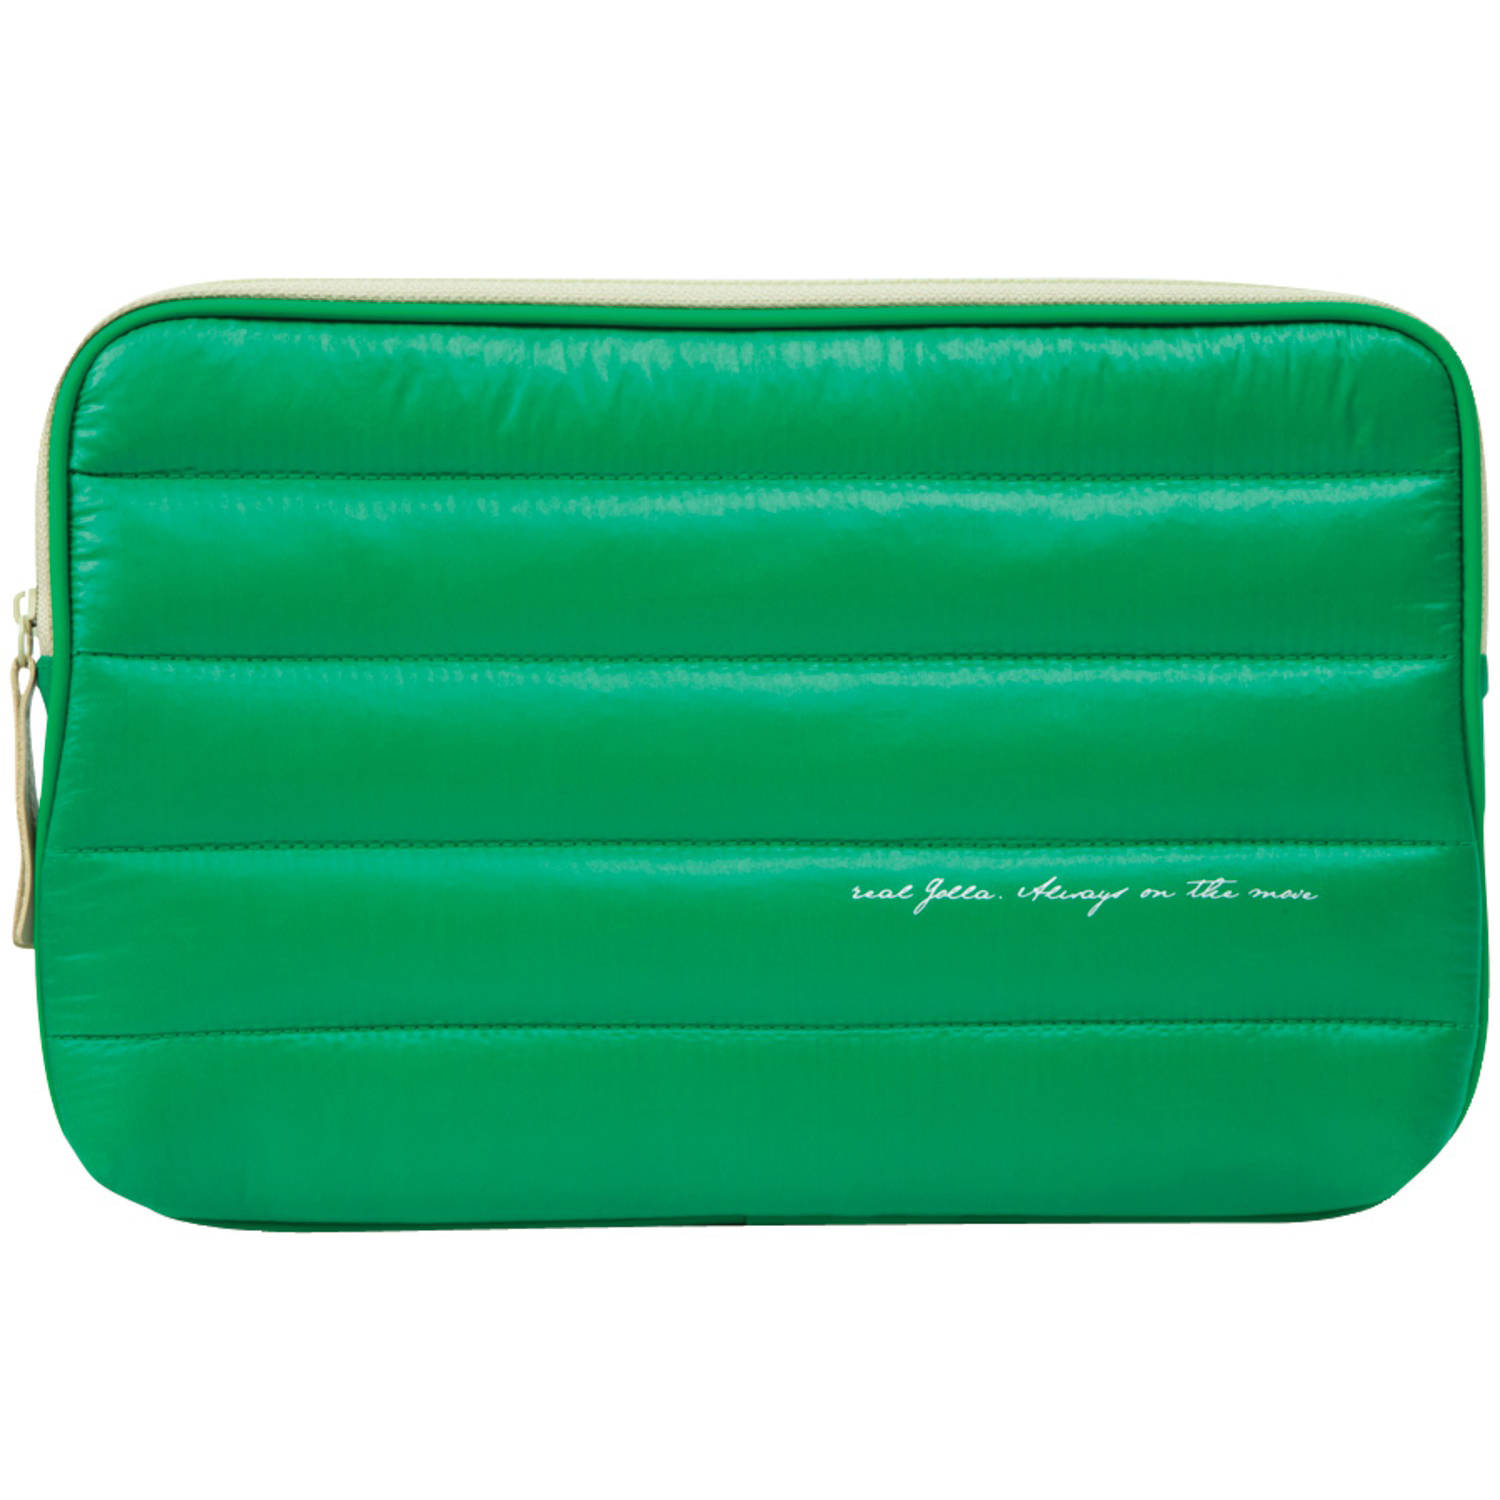 "Golla CG756 10.6"" Tablet Sleeve, Nevaeh Green"